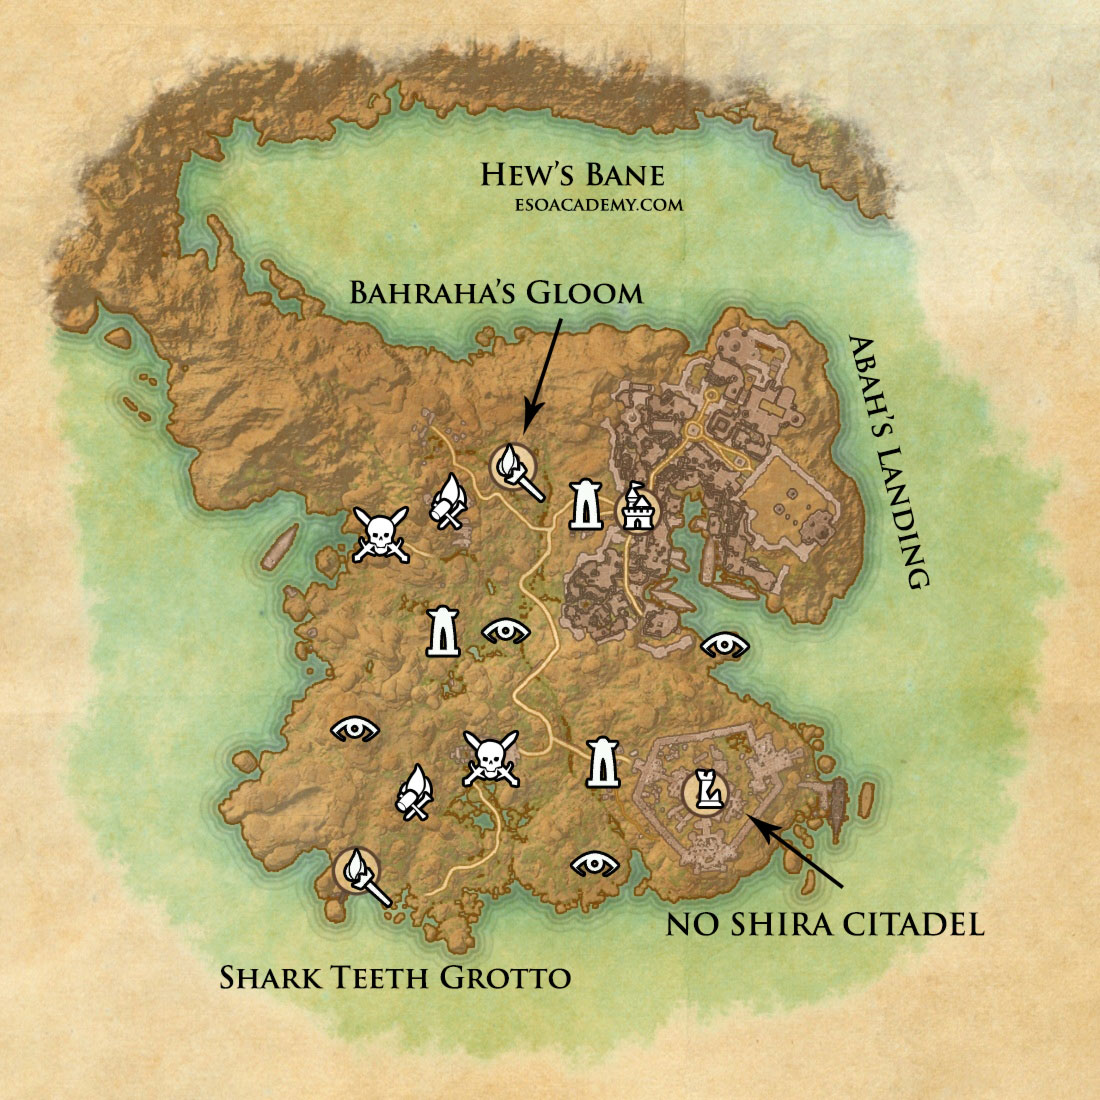 Map of Hew's Bane